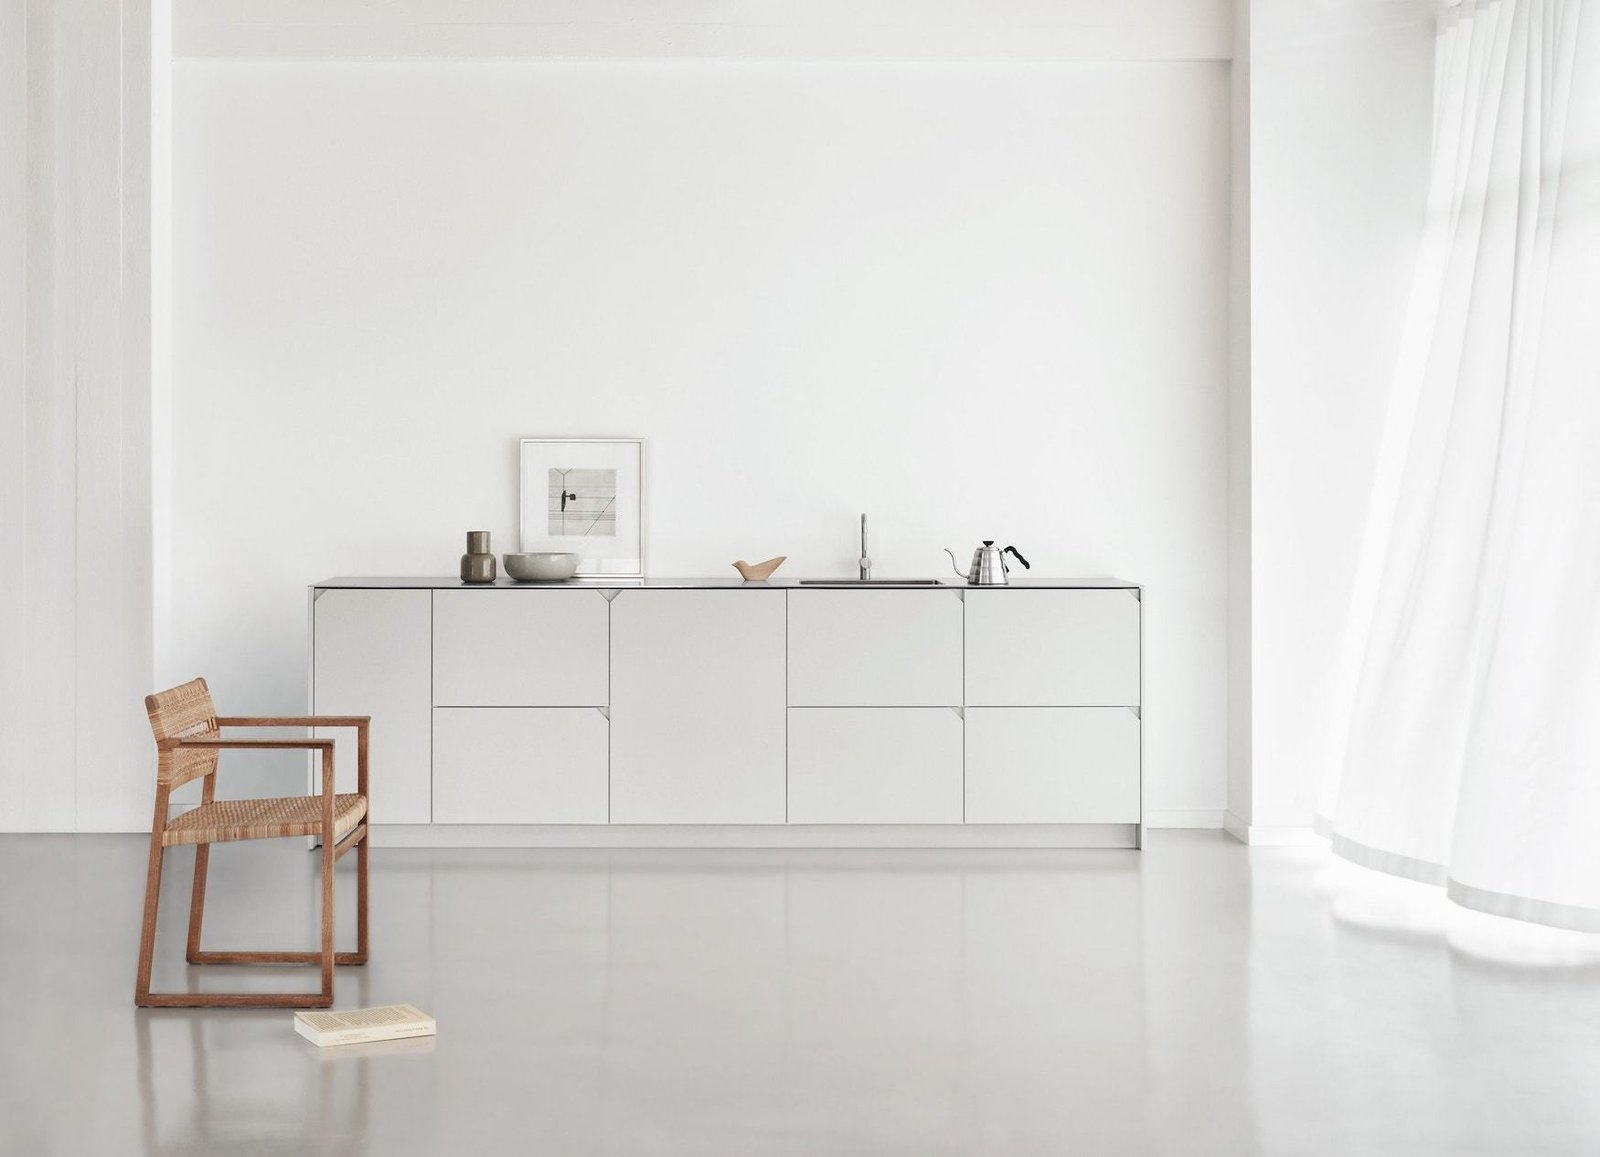 Degree is a minimalist kitchen system created by Copenhagen-based designer Cecilie Manz for Reform. Cecilie Manz has designed a kitchen based on simple principles; balancing functionality and a hospitable atmosphere. The steel countertop is a practical and raw expression that is balanced with warm shades of the cabinet fronts; the golden Oregon Pine and rich painted grey. The wood grain of the Oregon Pine is laid at a 45 degree angle, softly contrasting with the horizontal and vertical lines of the kitchen. The geometric notch handle is placed in the corner of each front and adds a graphic element to the kitchen. The simple details and honest materials create a classic but modern look. A comfortable backdrop for everyday life.  Interiors